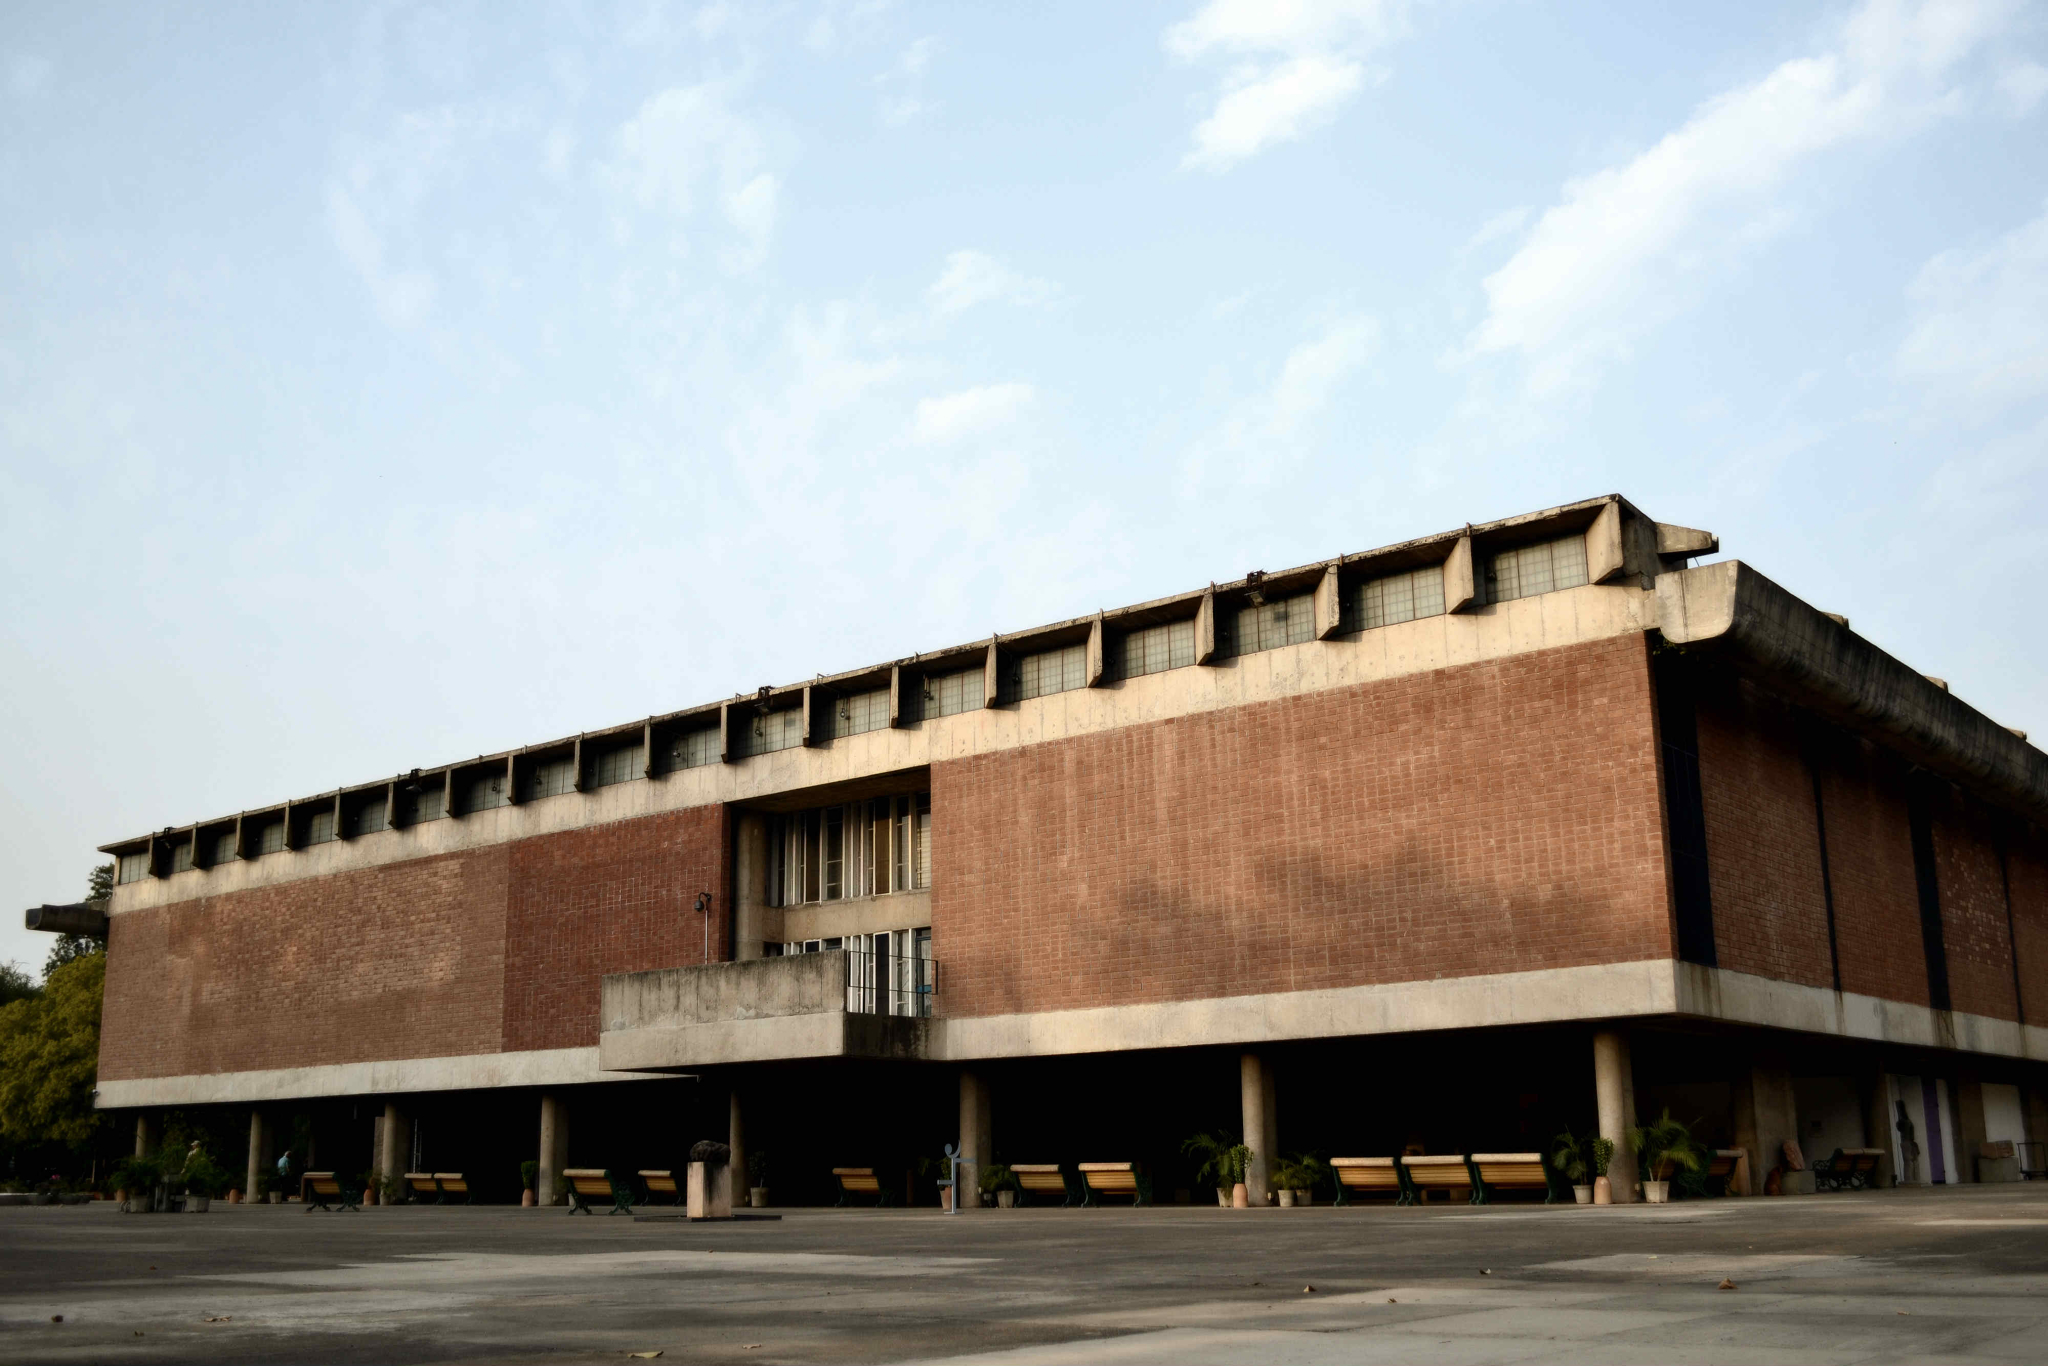 government museum and art gallery chandigarh Government museum and art gallery, chandigarh, is a premier museum of north india having collections of gandharan sculptures, pahari and rajasthani miniature.